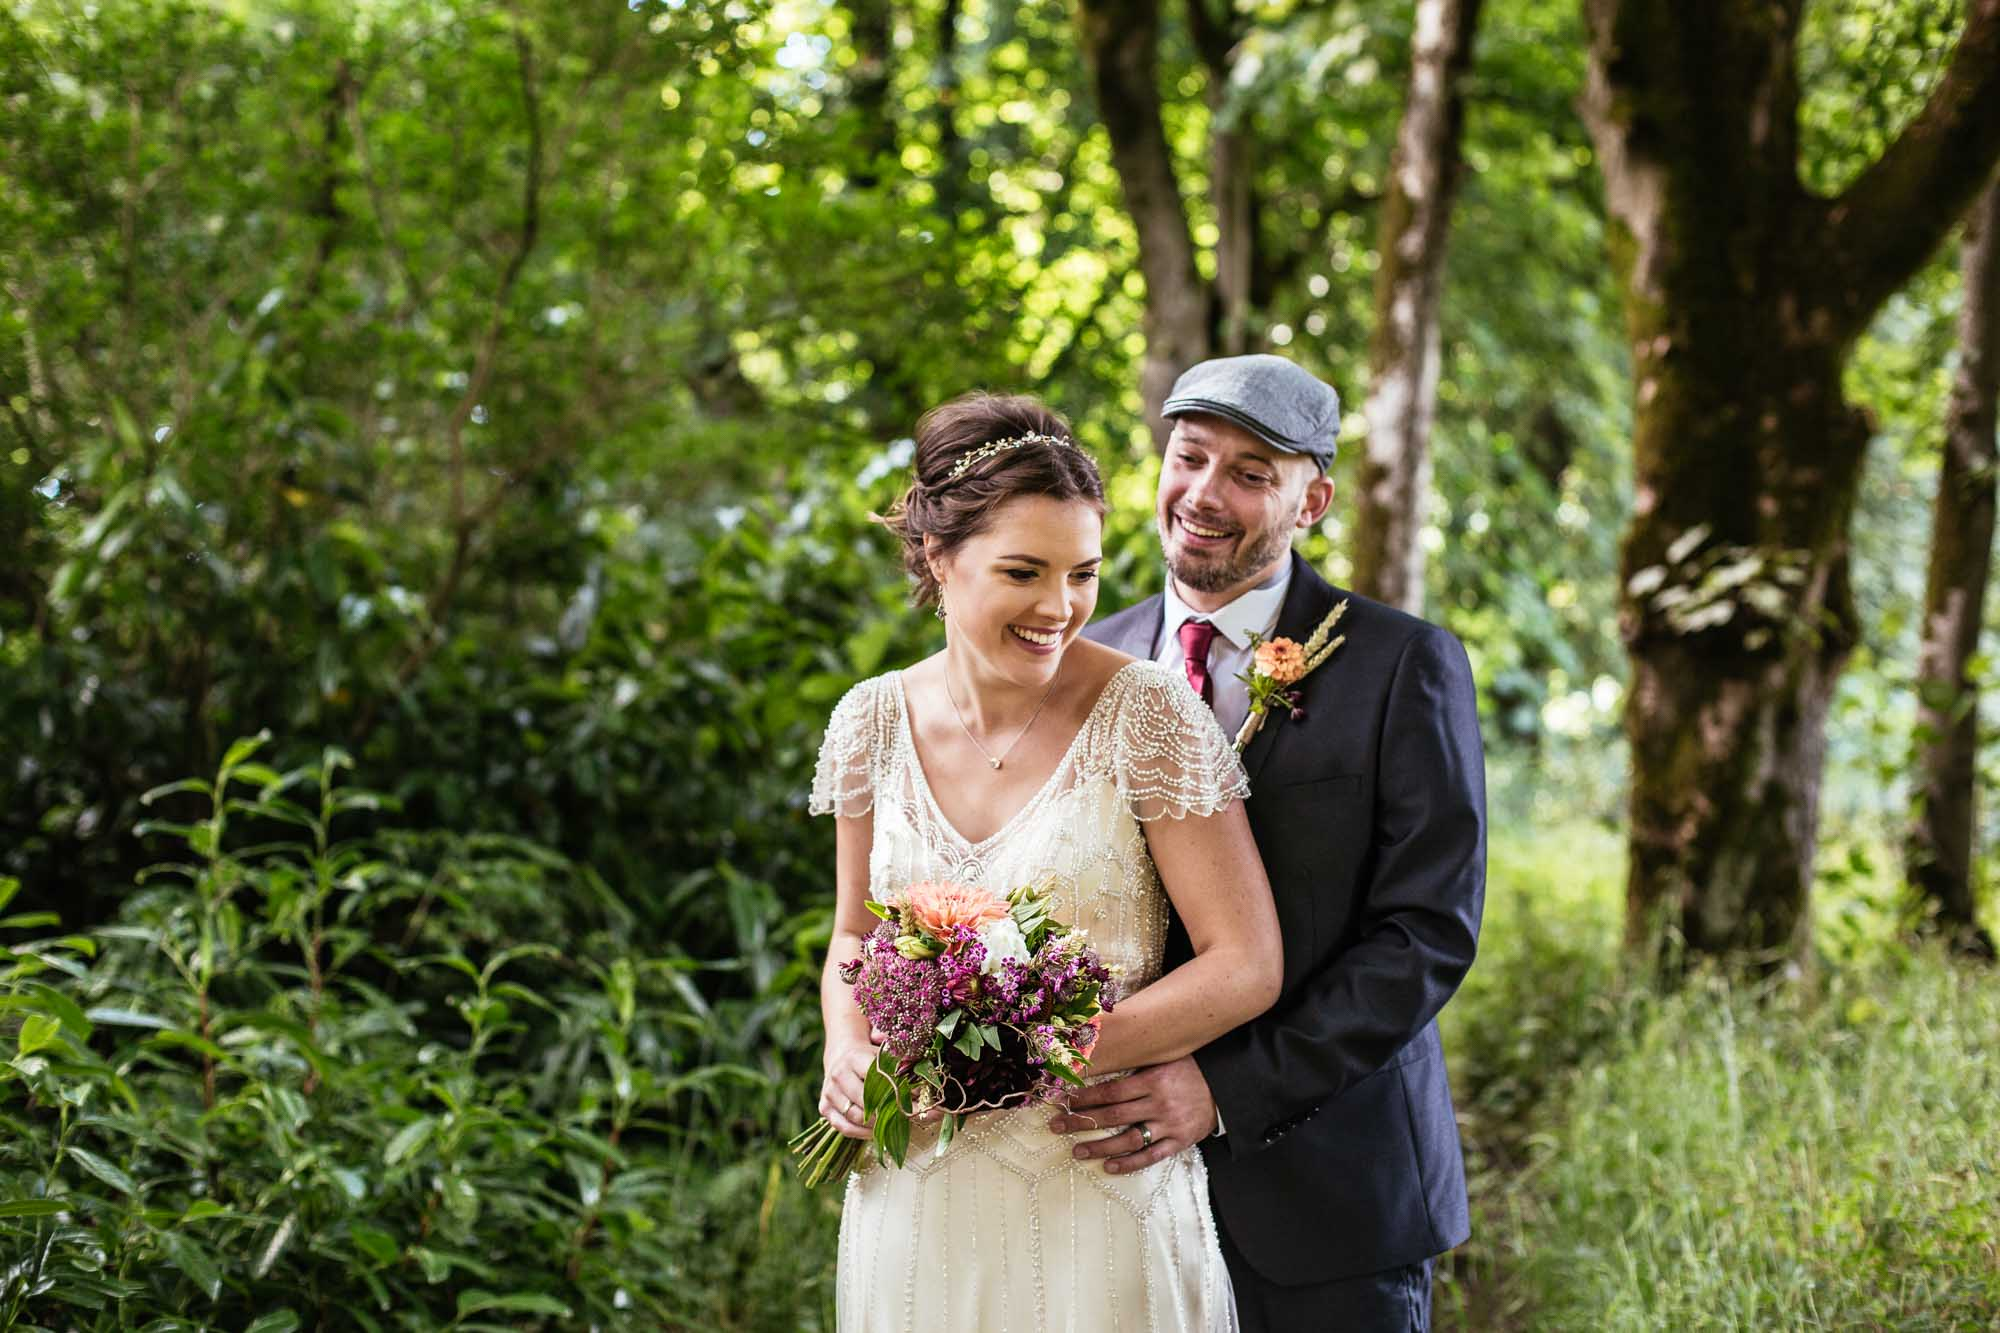 Creative Wedding Photos Hargate Hall